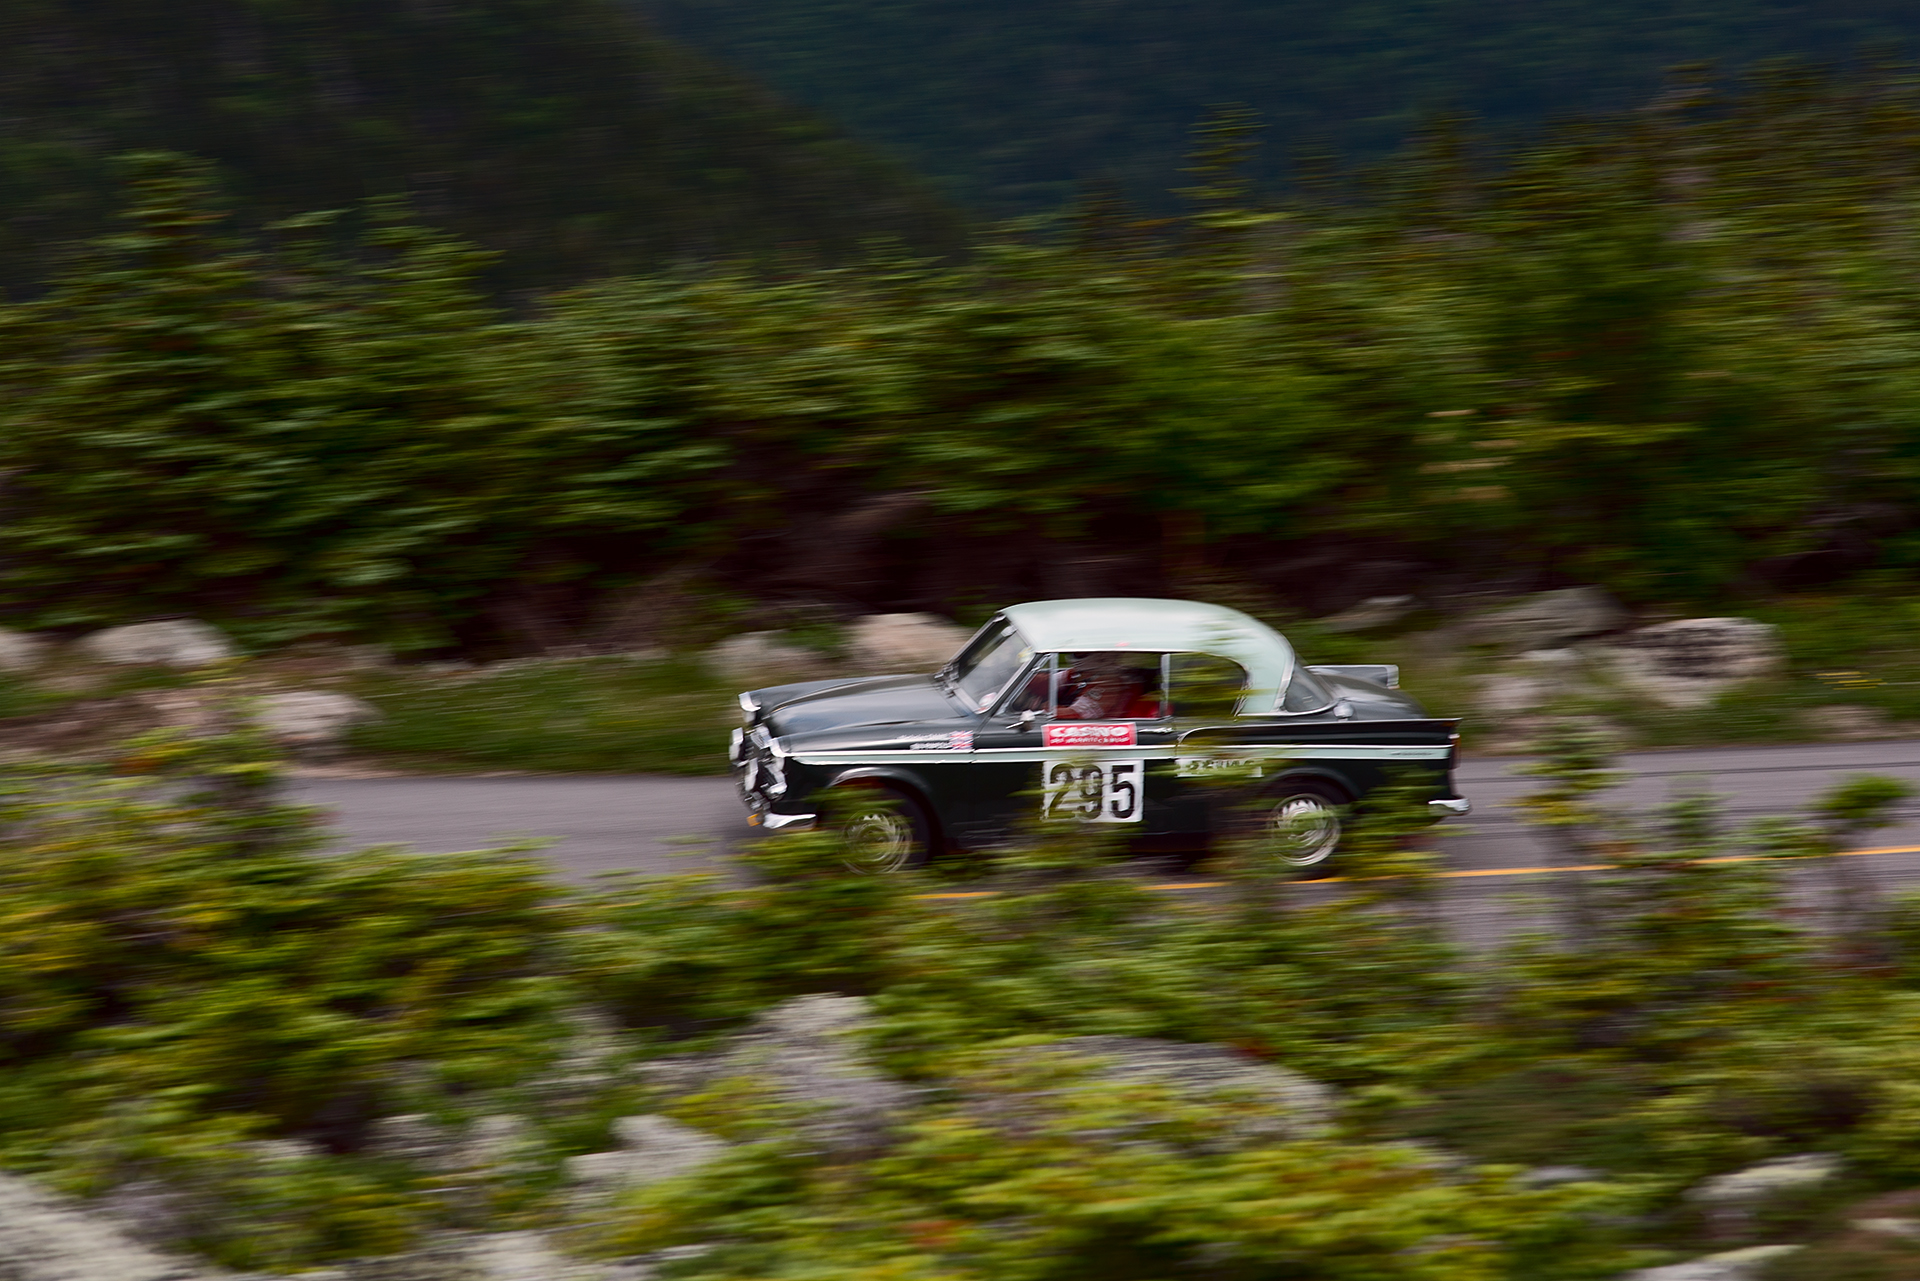 Car 295 at Climb to the Clouds 2017